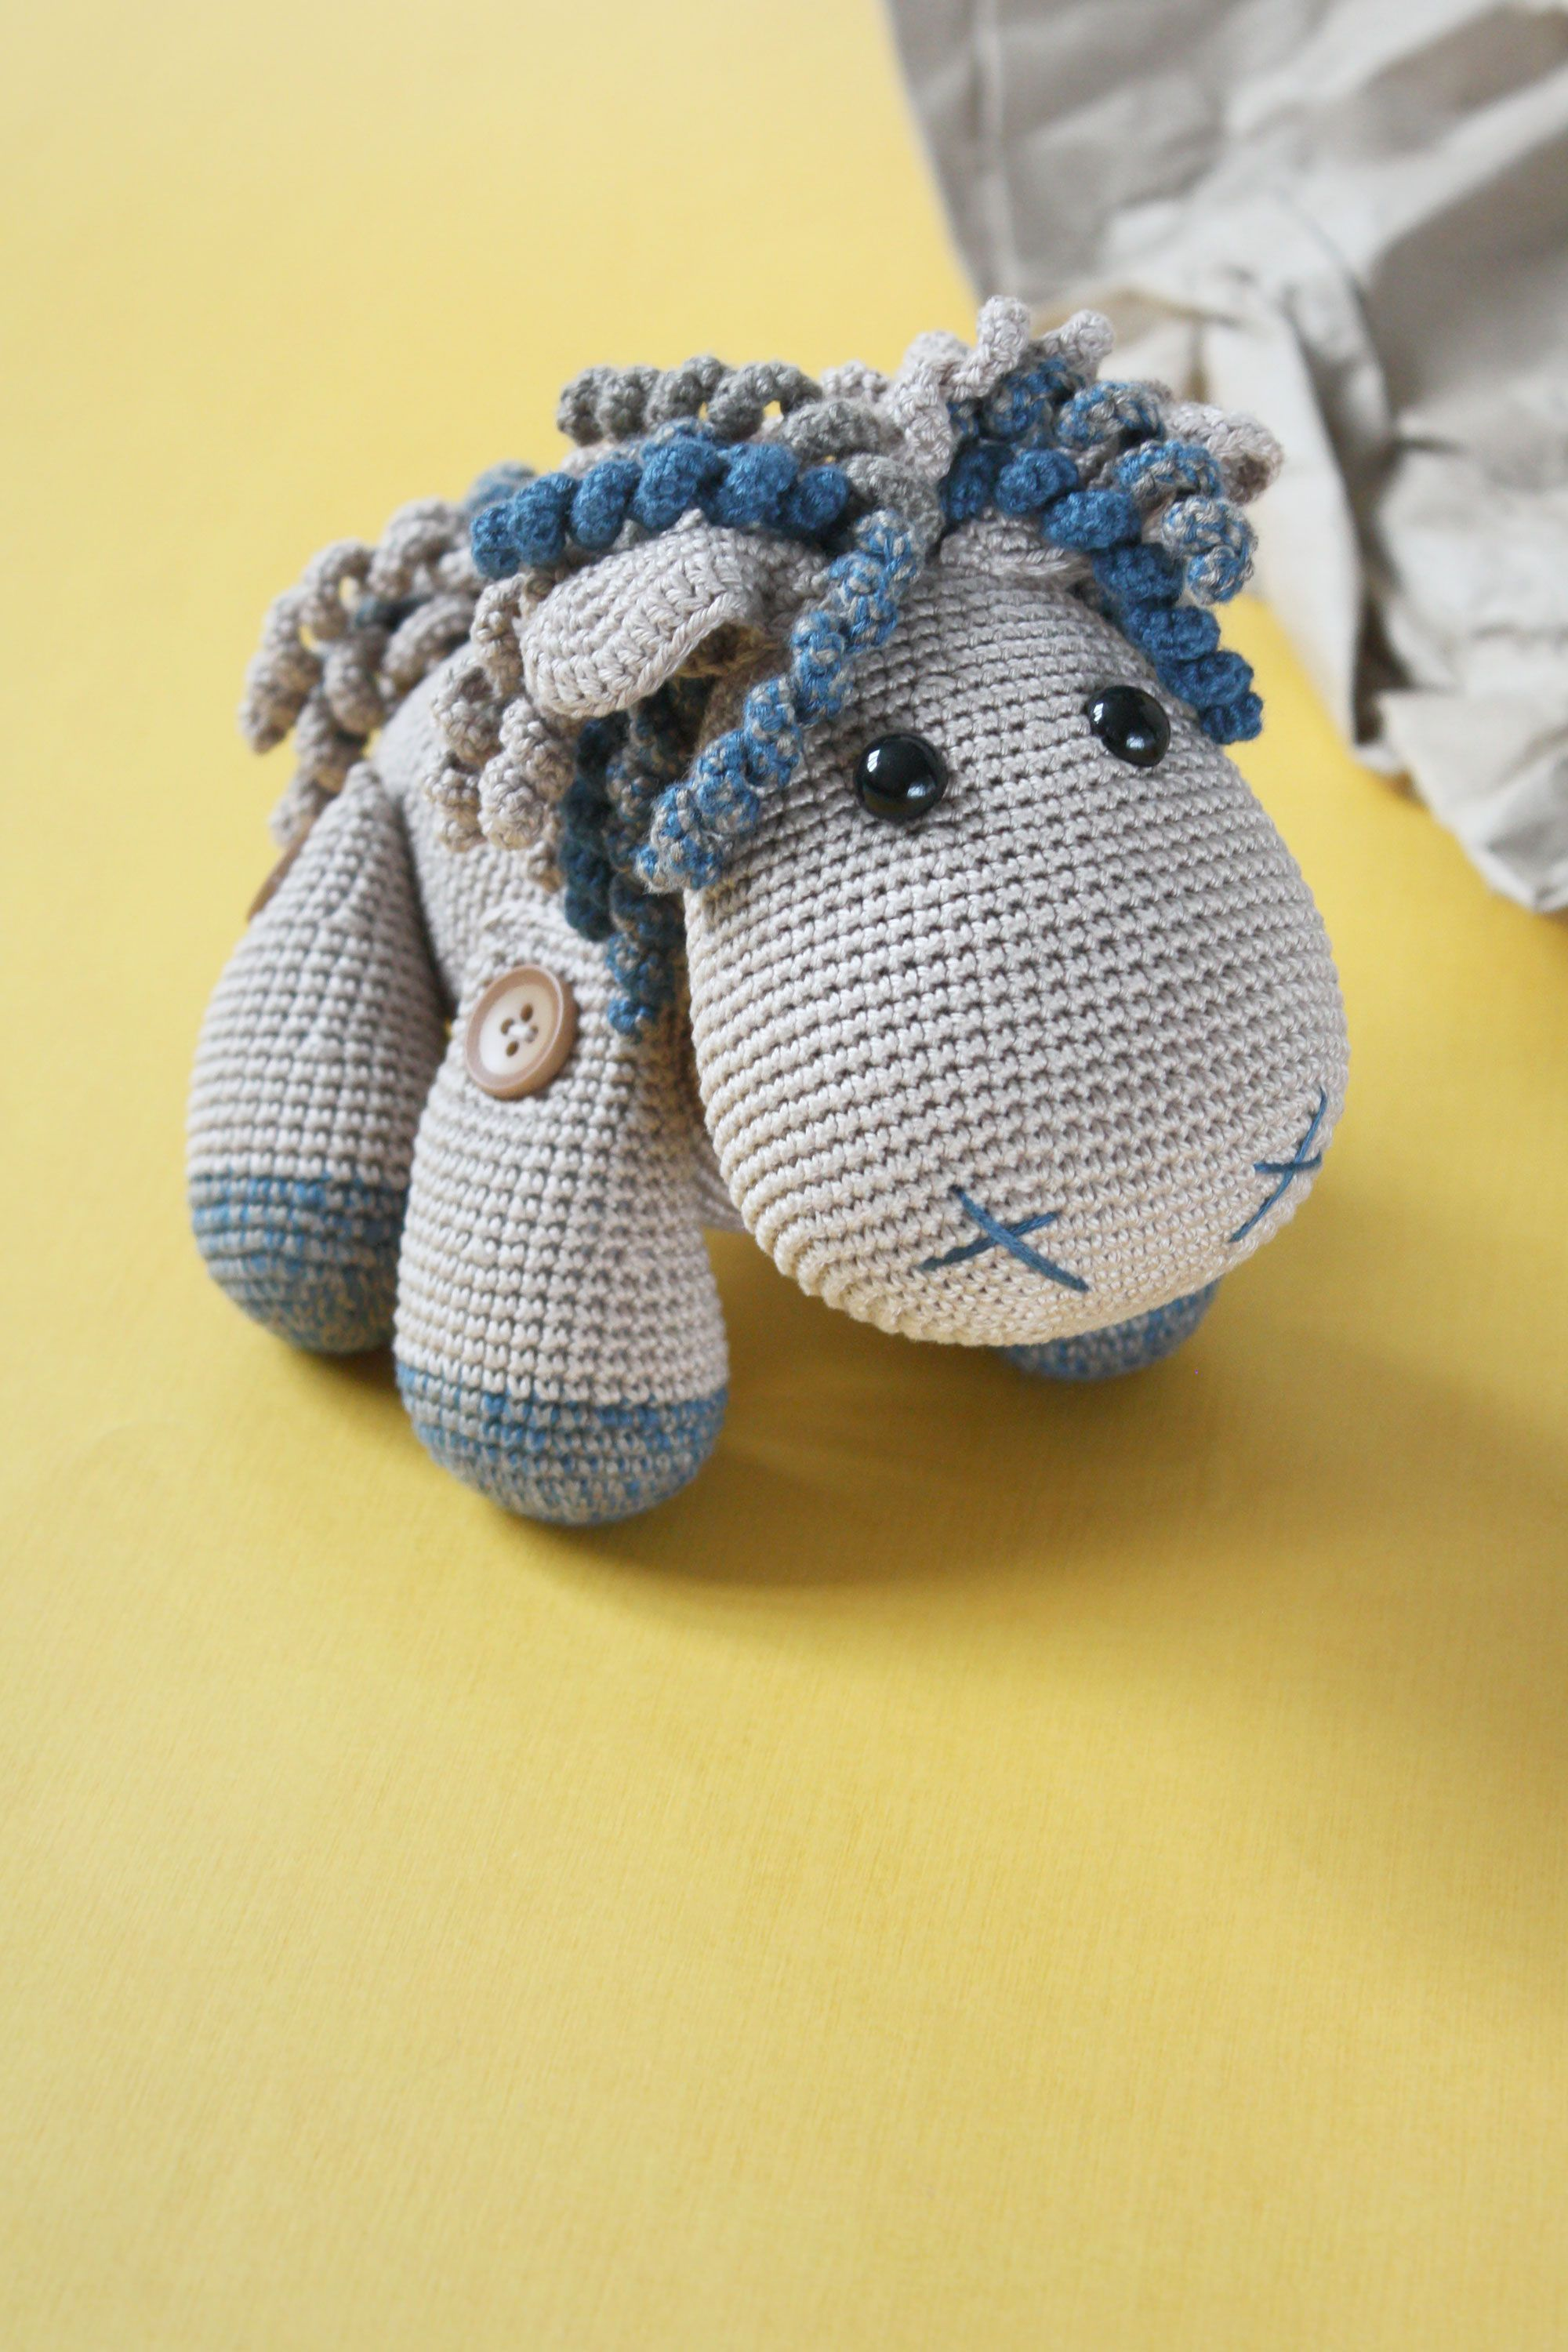 Photo of #Crochet toys for girls Birthday gifts for baby boy 1 year olds plush horse toys